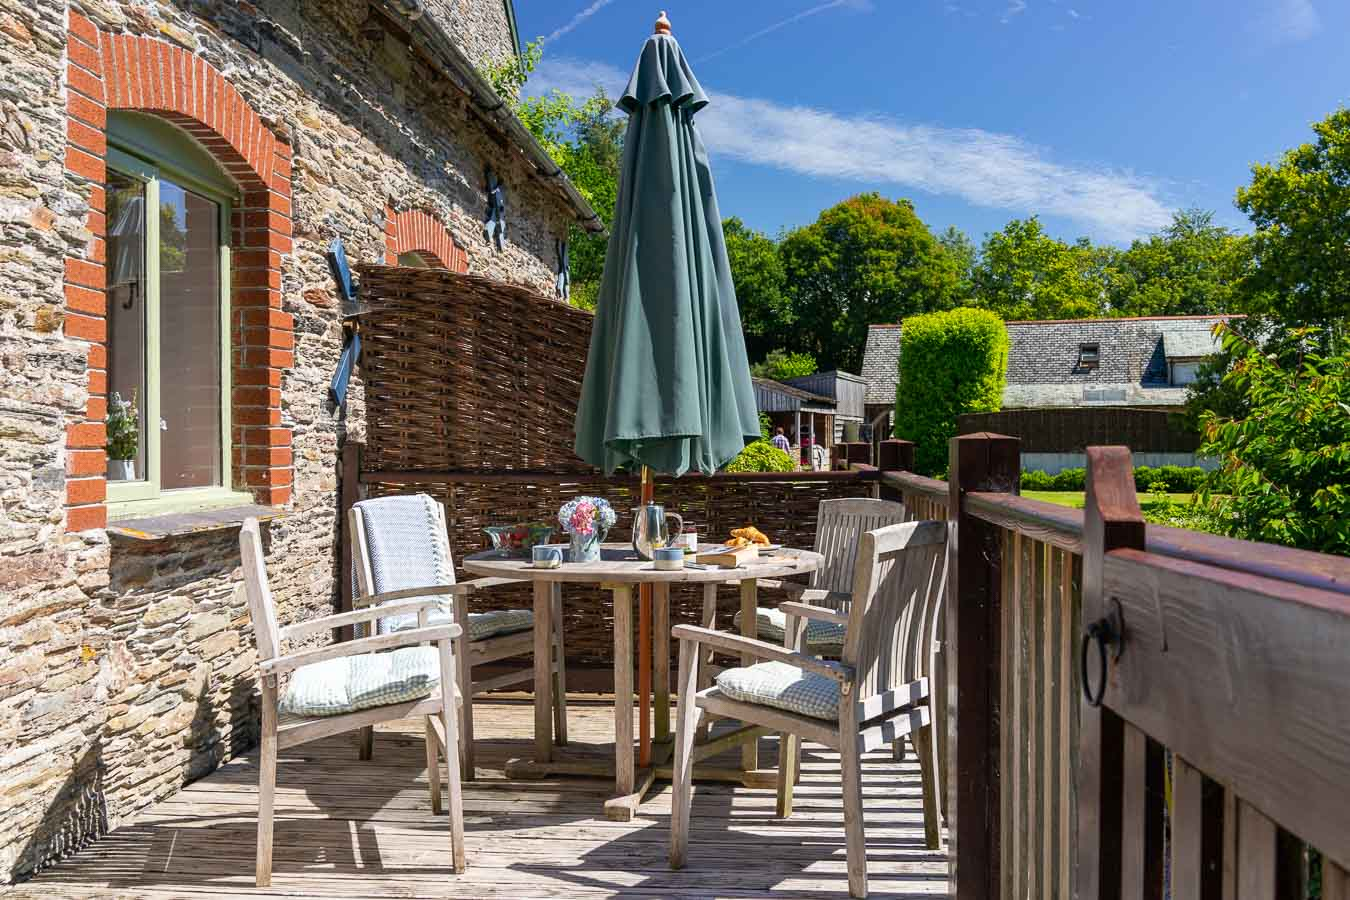 The private south facing sun terrace of Mangers cottage Flear Farm. Outdoor furniture and green views of Devon countryside.